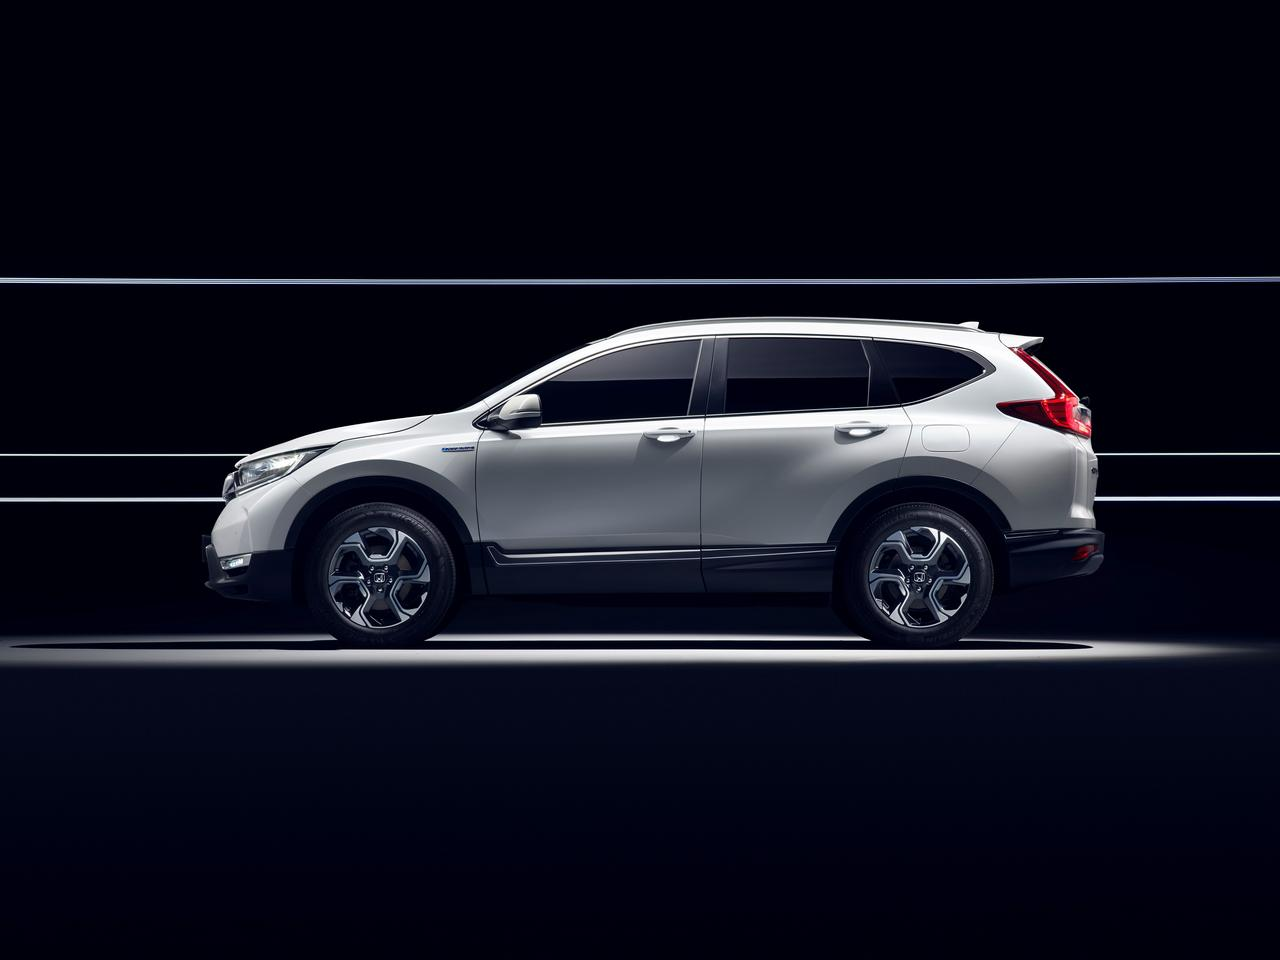 Honda CR-V 2017 side view